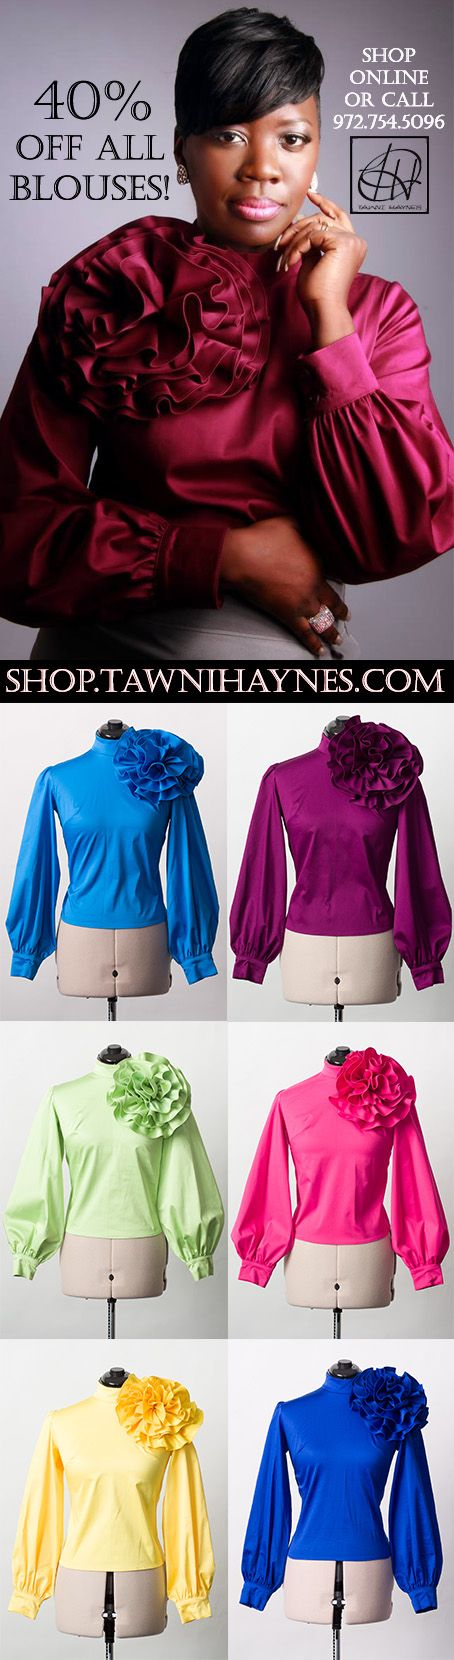 40% Off all Tawni Haynes Custom Blouses! We started 2013 Cyber Monday deals a day early! Shop online @ http://shop.tawnihaynes.com/SearchResults.asp?Cat=1822 or call 972-754-5096